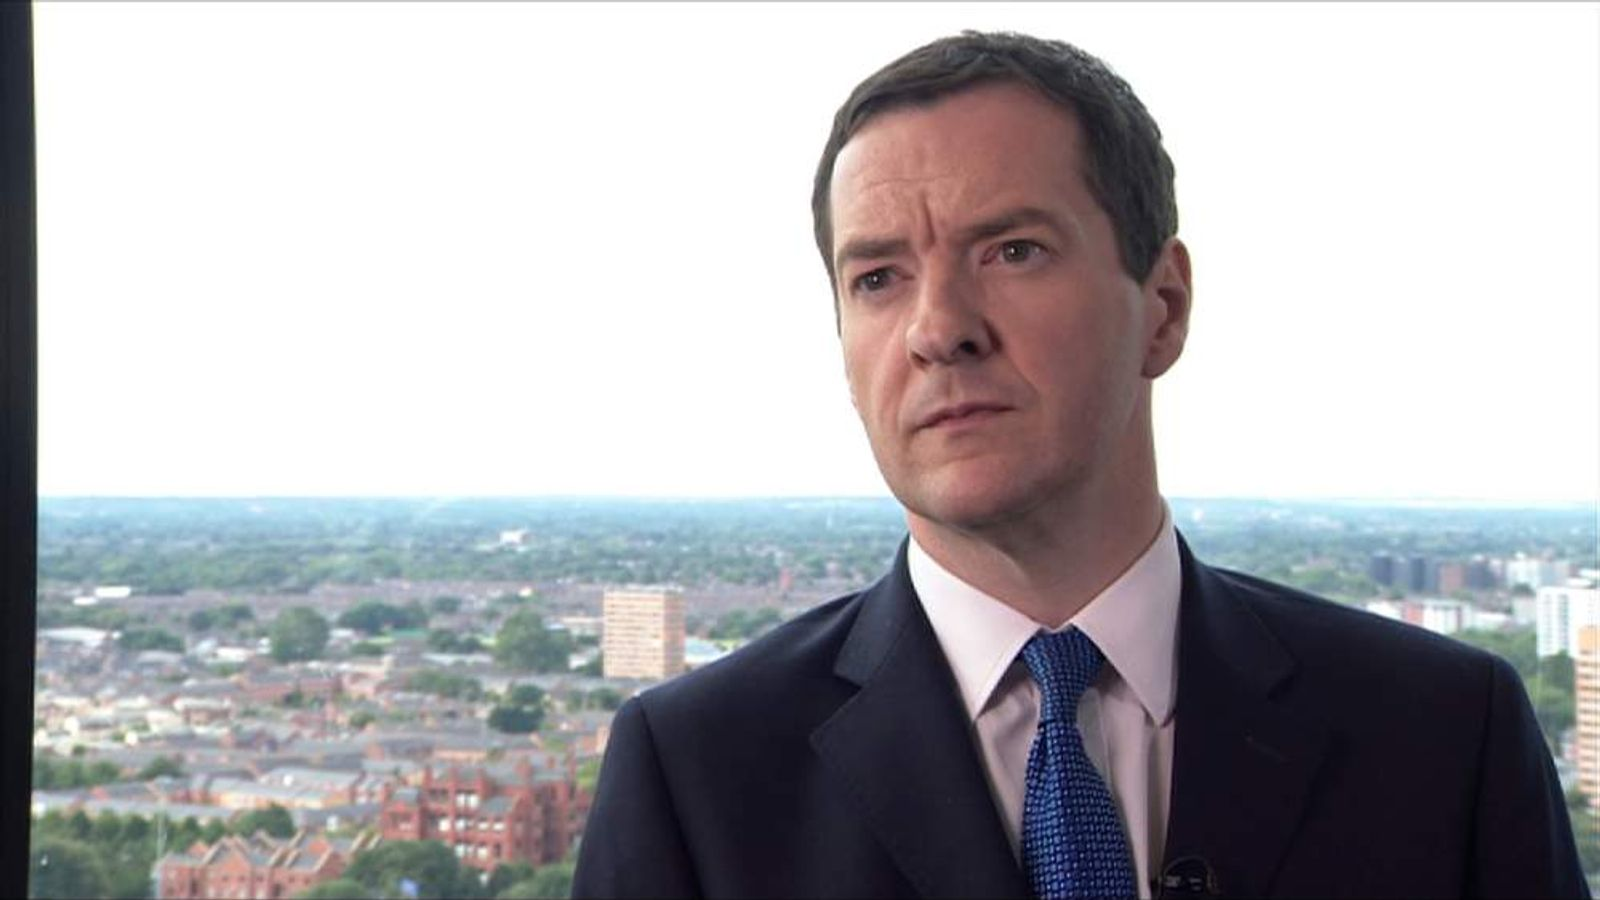 George Osborne on Baroness Warsi's resignation